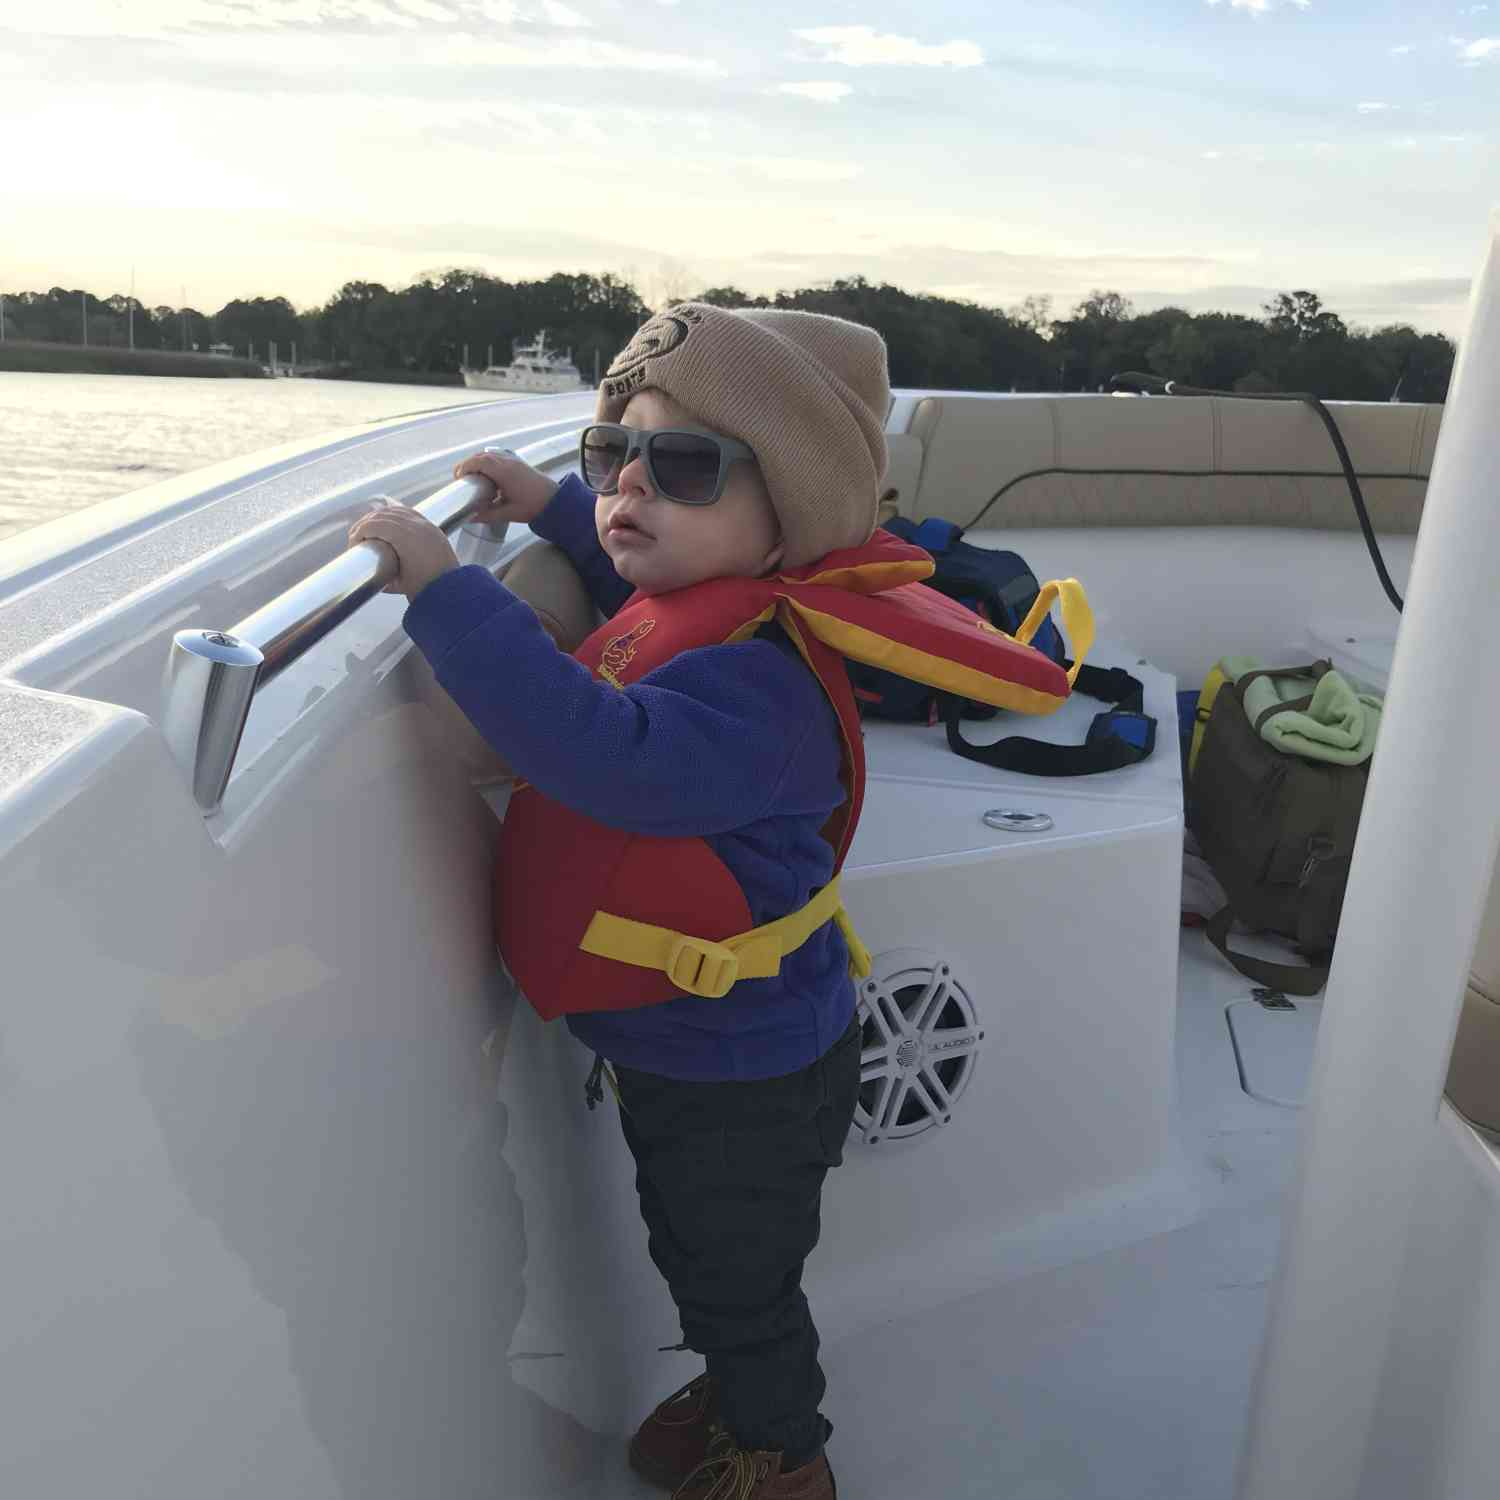 Title: A chilly morning but a great day for his first ride! - On board their Sportsman Heritage 211 Center Console - Location: Charleston, SC. Participating in the Photo Contest #SportsmanApril2019